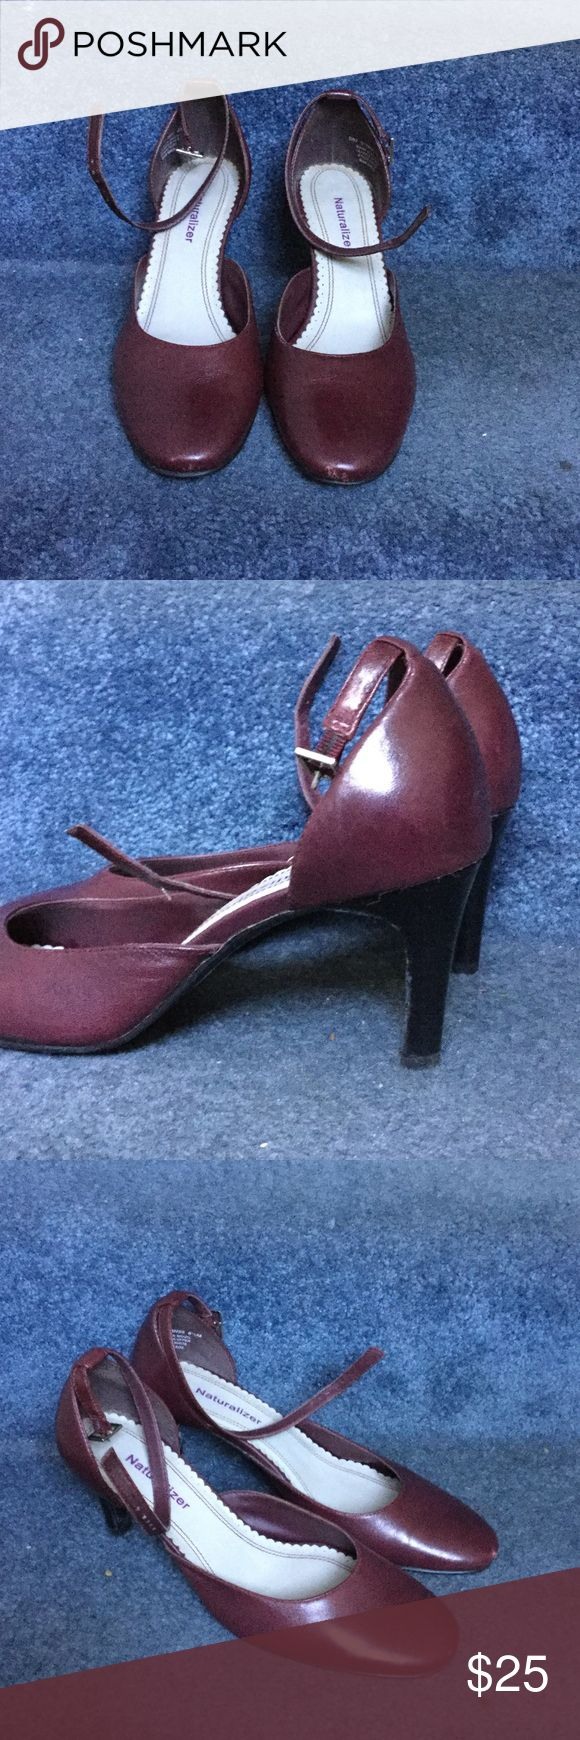 Mid heel shoes Slightly used; leather Naturalizer Shoes Heels